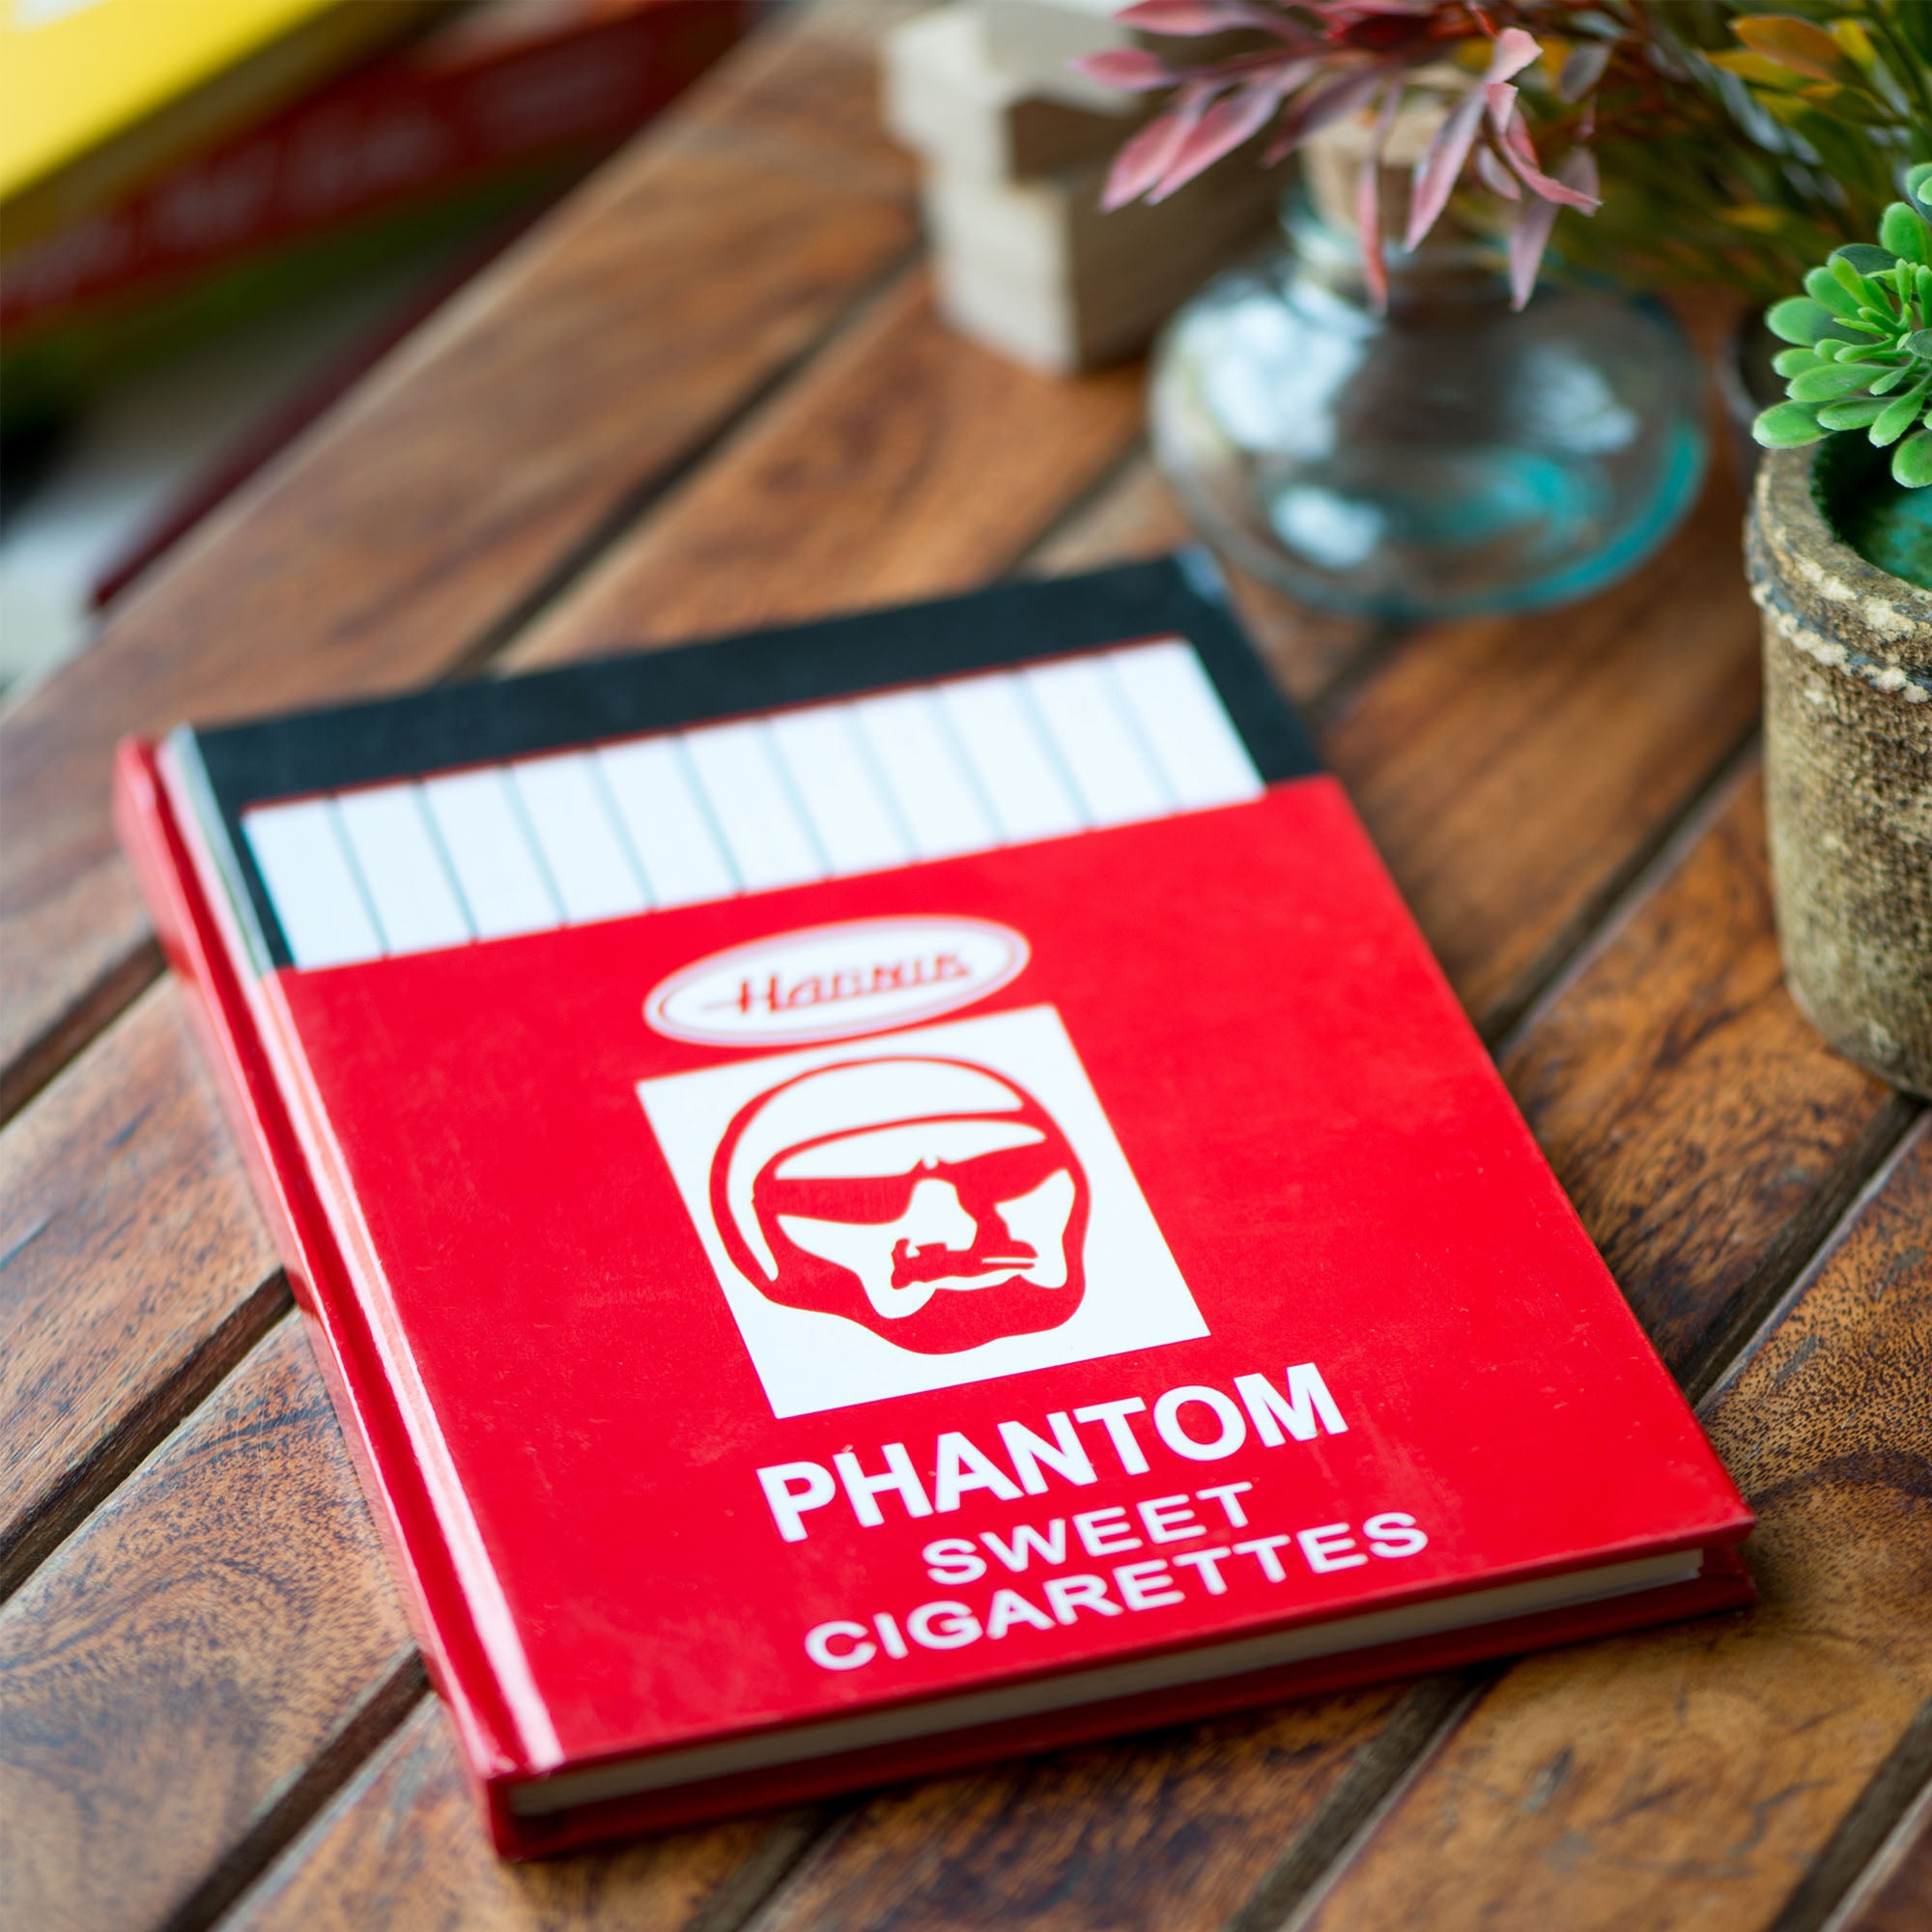 'Phantom Sweet Cigarettes' Notebook Online In India